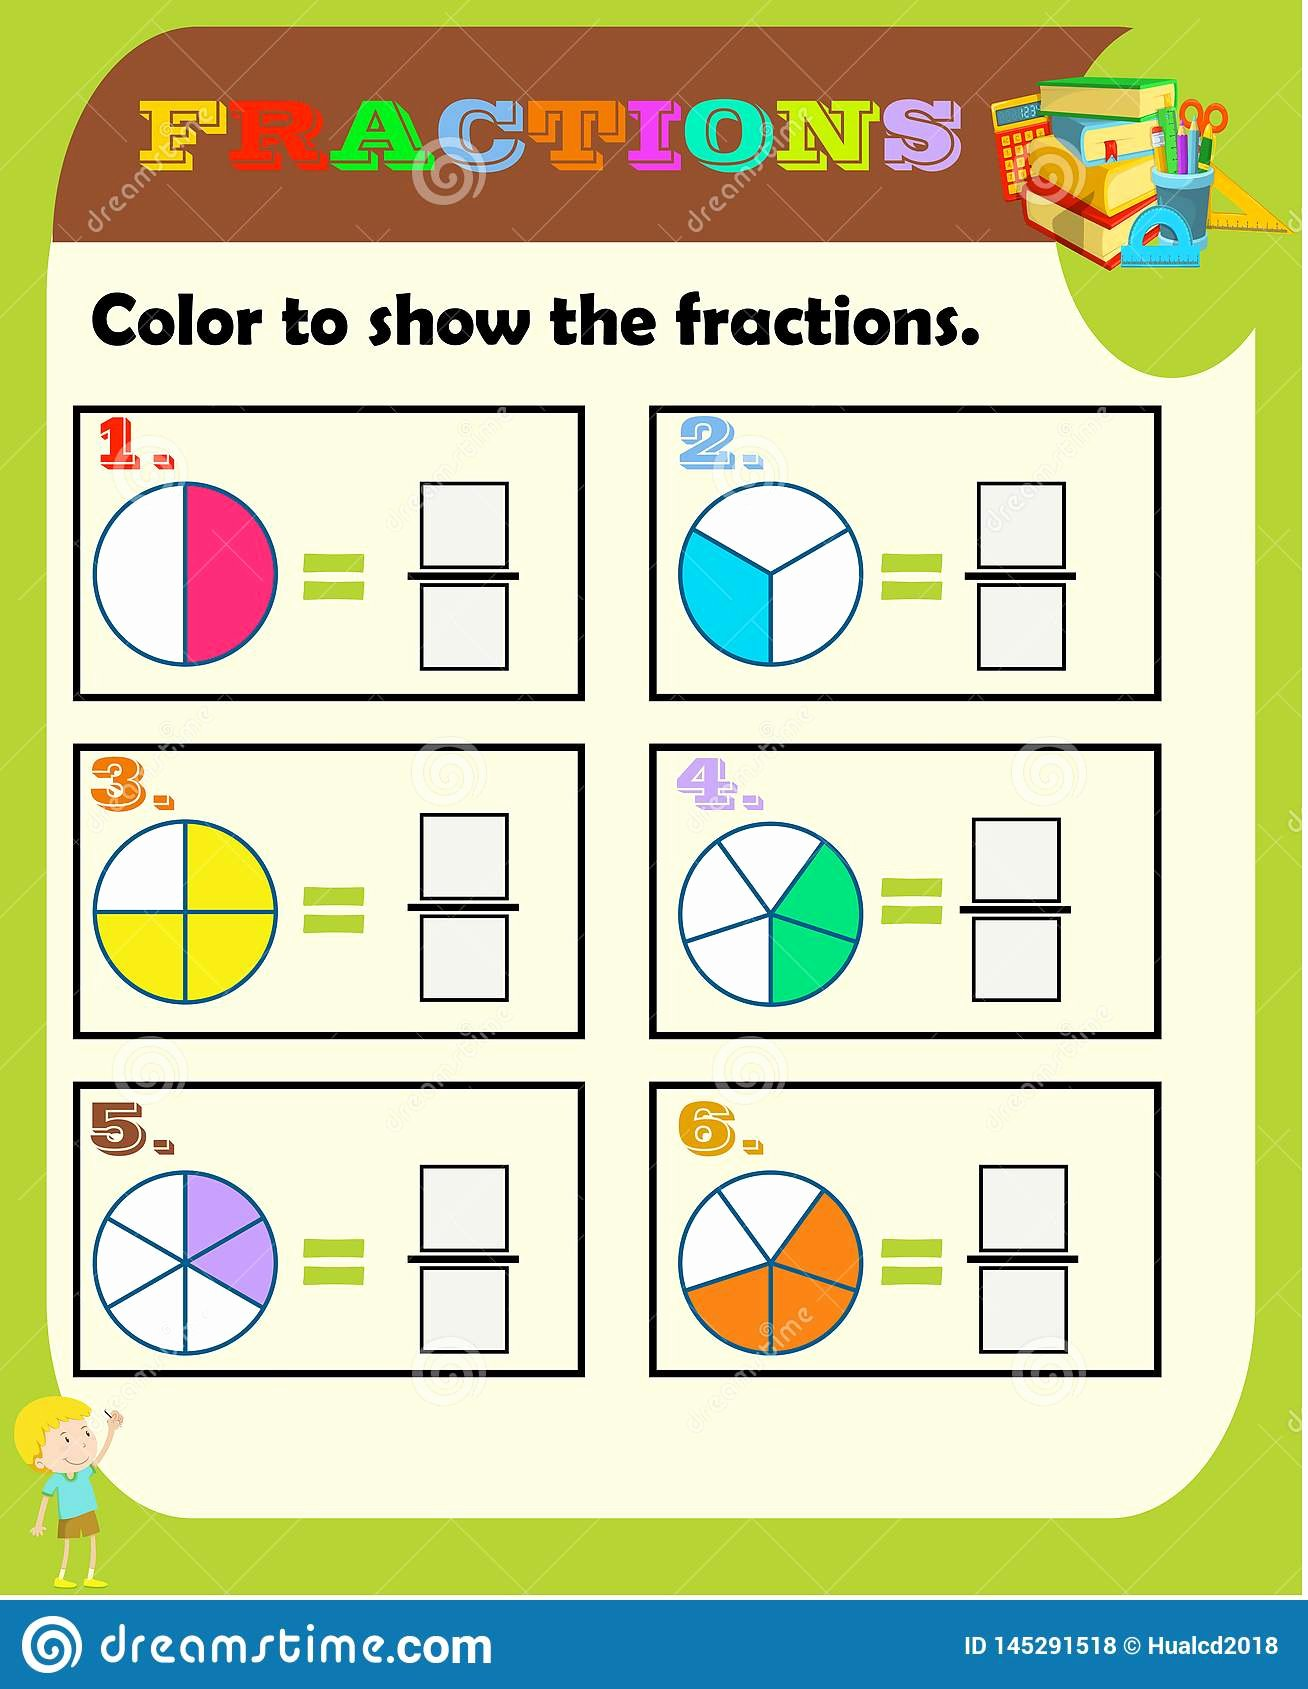 Printable Fraction Worksheets for Preschoolers New Circle the Correct Fraction Mathematics Math Worksheet for